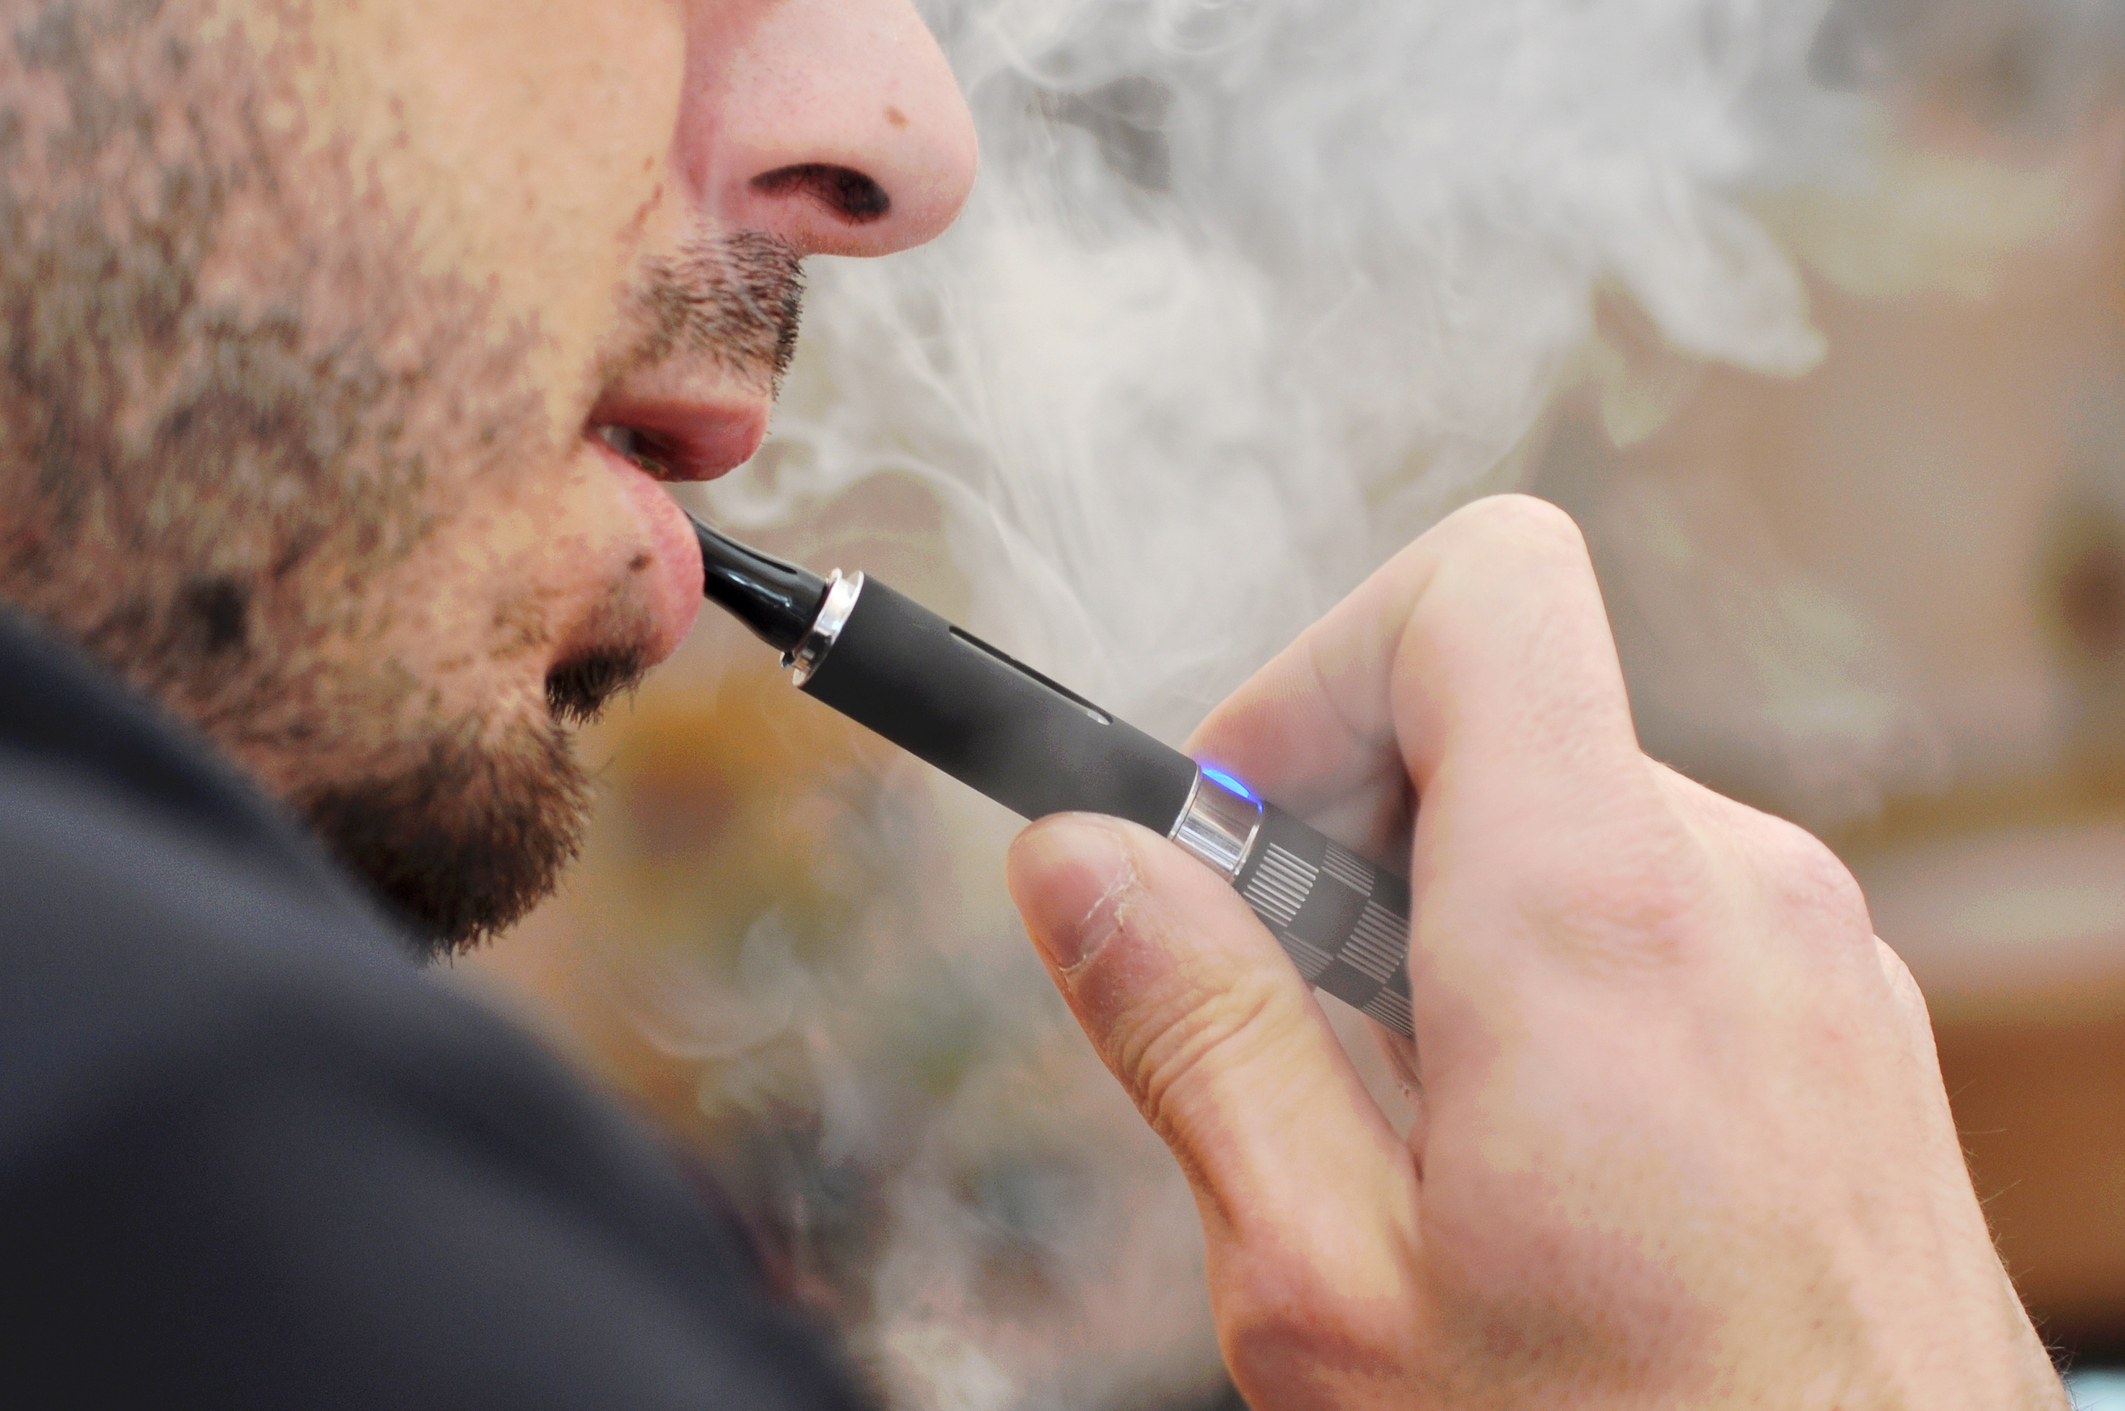 Nicotine-based E-cigarettes may be as harmful as smoking